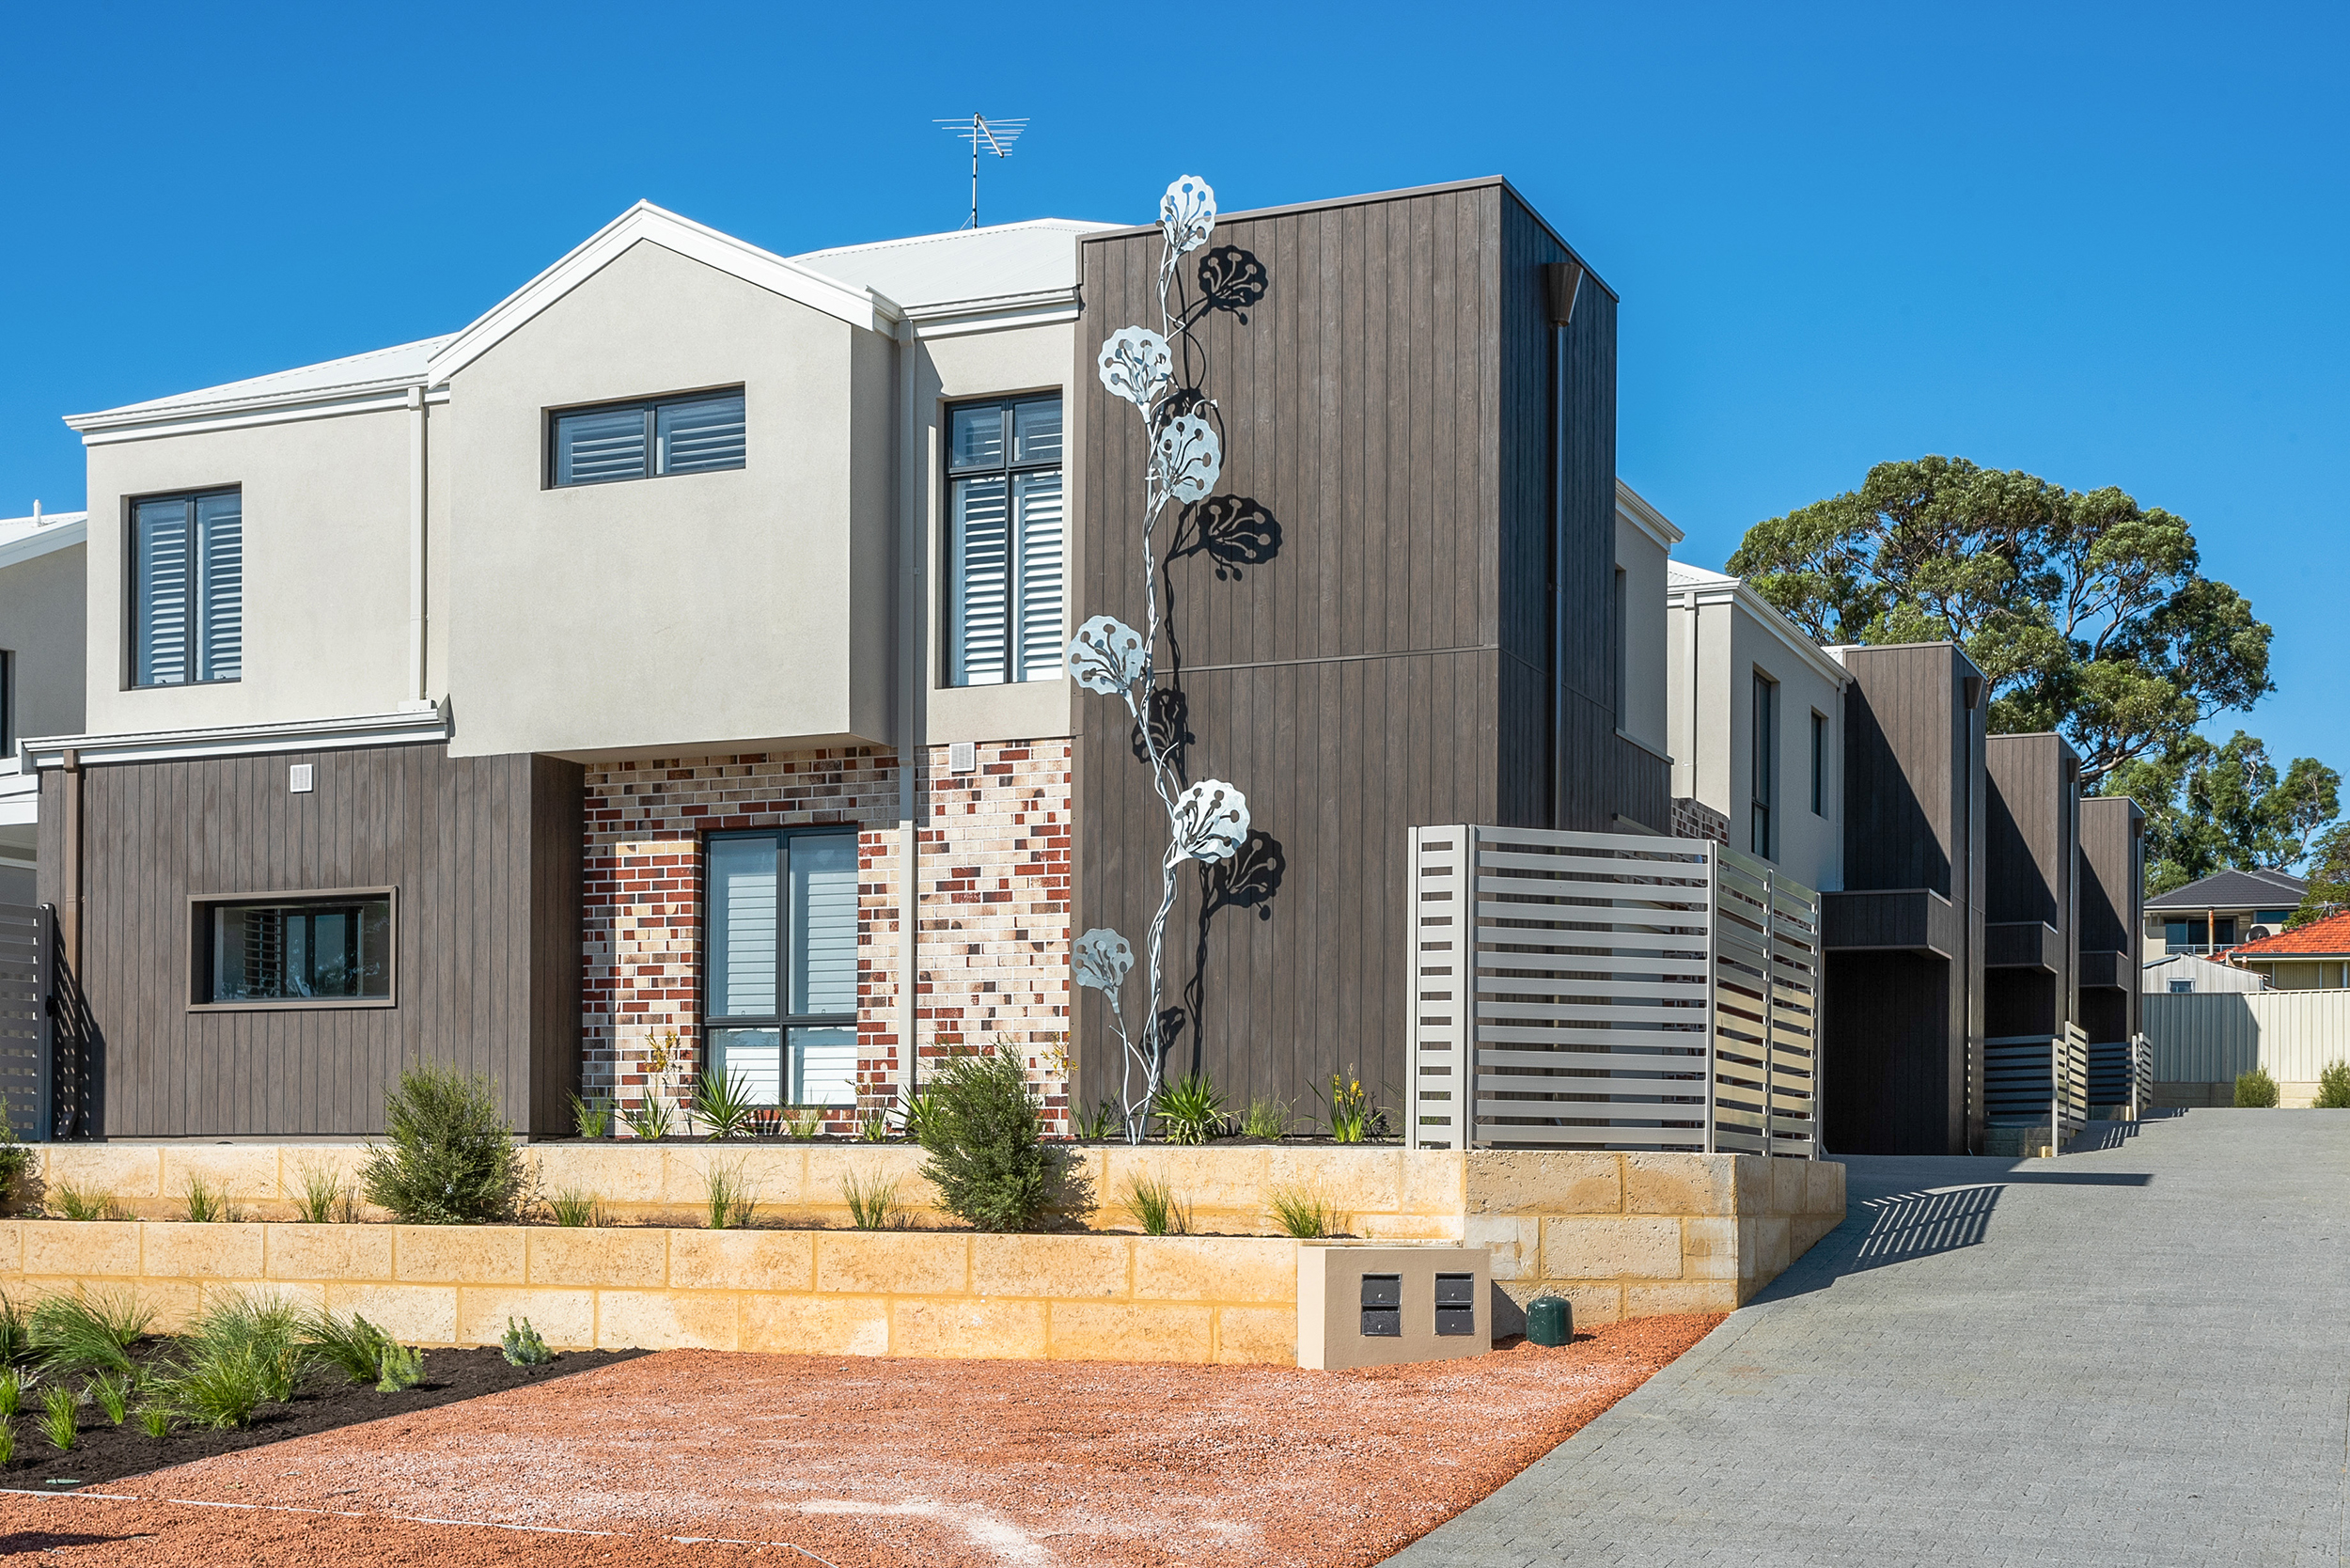 6/15 Maddox Crescent Melville - House For Sale - 23263791 - ACTON Applecross